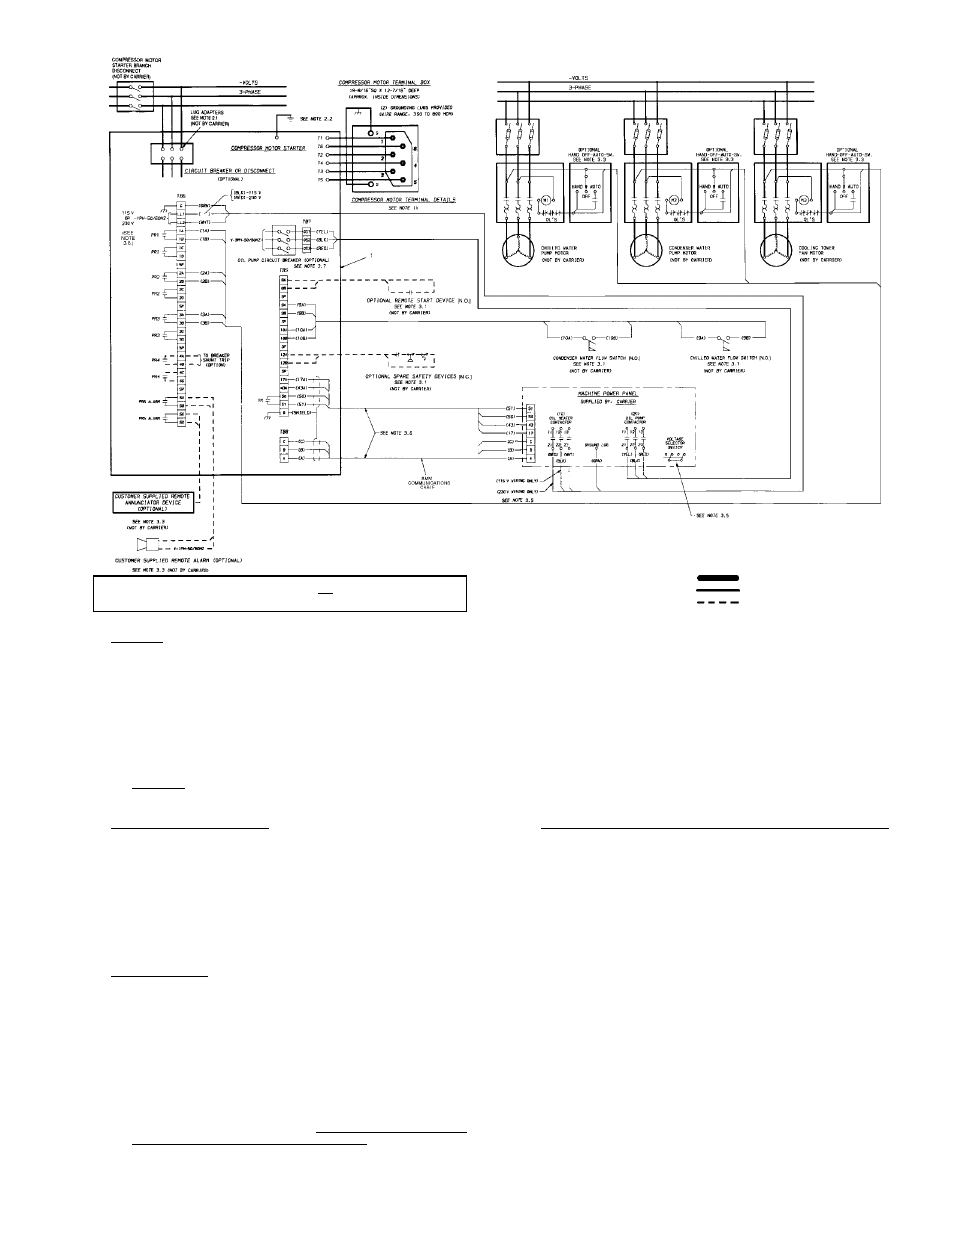 carrier hermetic centrifugal liquid chillers 19xr page33?resize\=665%2C861 carrier rooftop unit wiring diagrams stove wiring diagram new  at pacquiaovsvargaslive.co